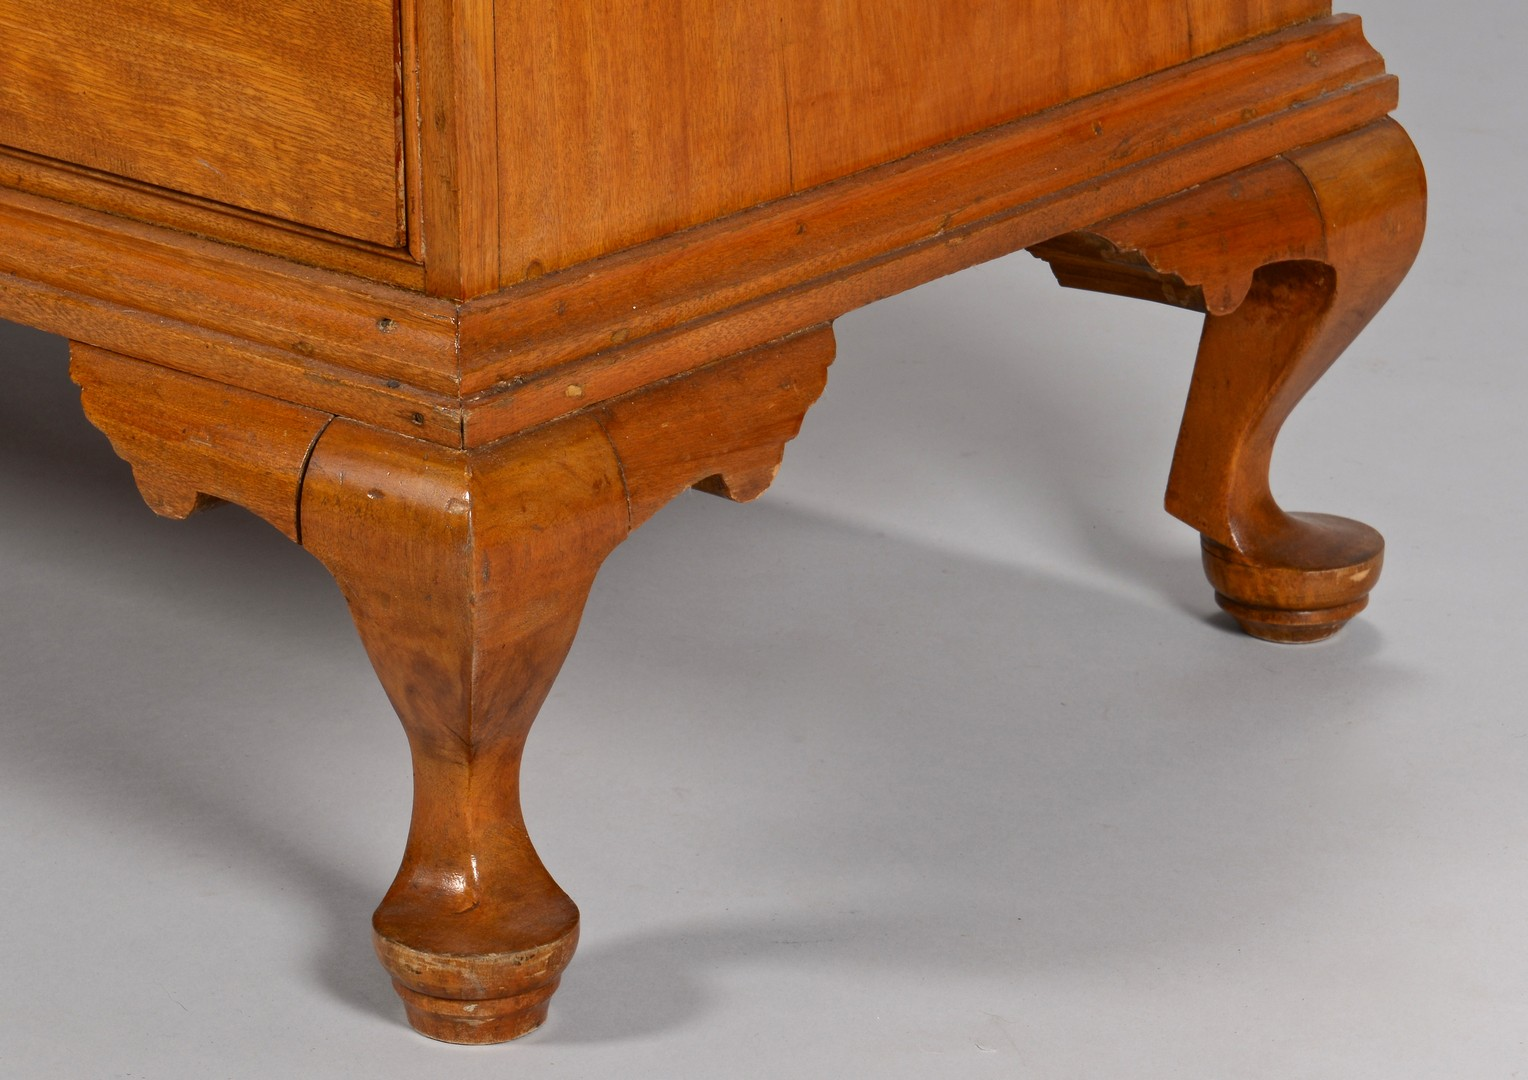 Lot 636: New England Queen Anne Chest of Drawers